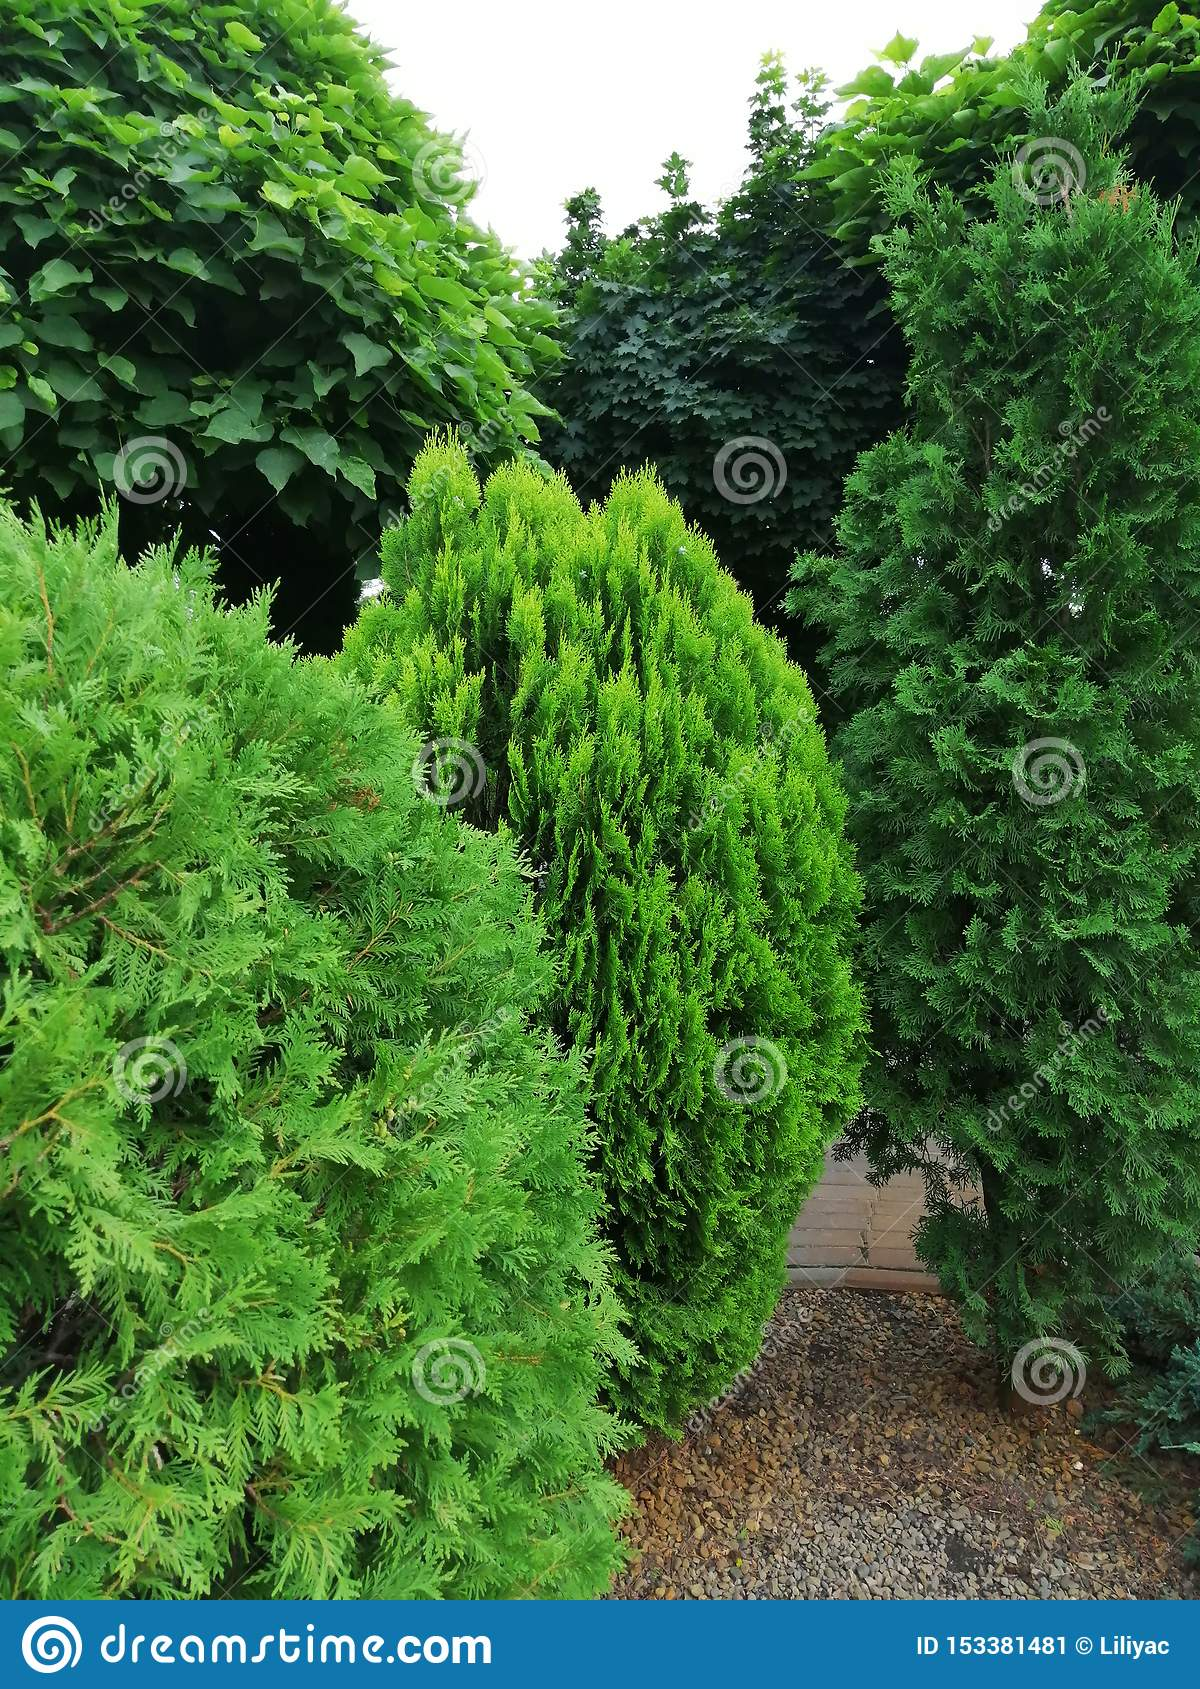 Different Types Of Coniferous Trees In The Garden Stock